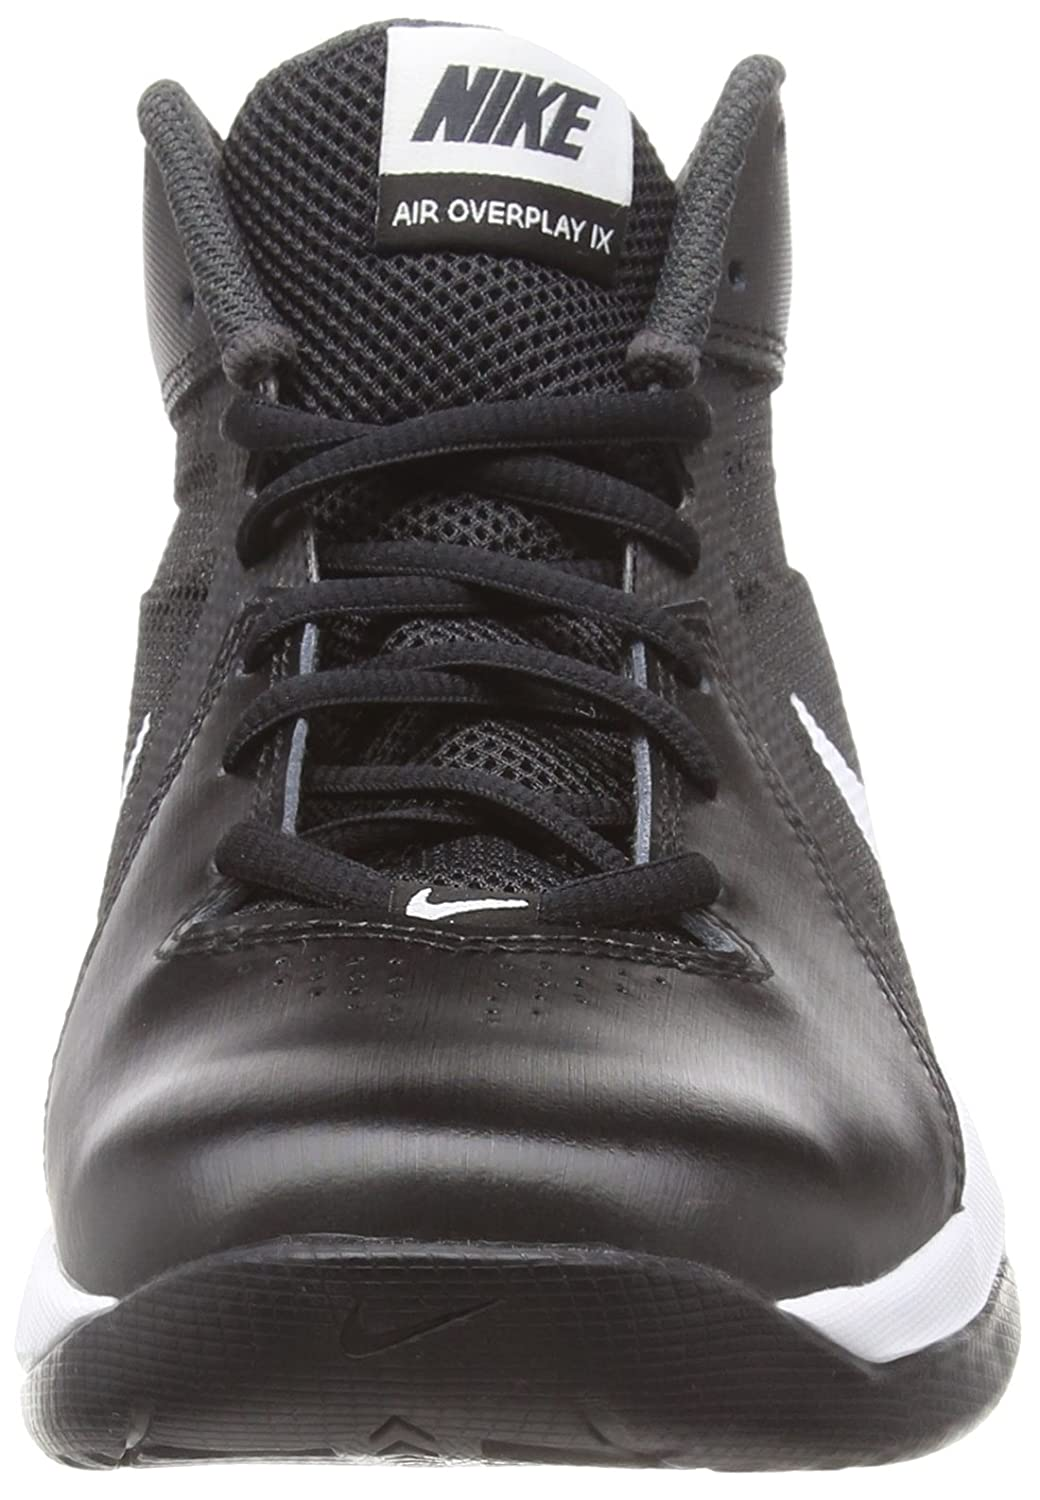 best website ef0ec b1e4c Amazon.com   Nike Men s The Air Overplay Ix Basketball Shoe   Basketball